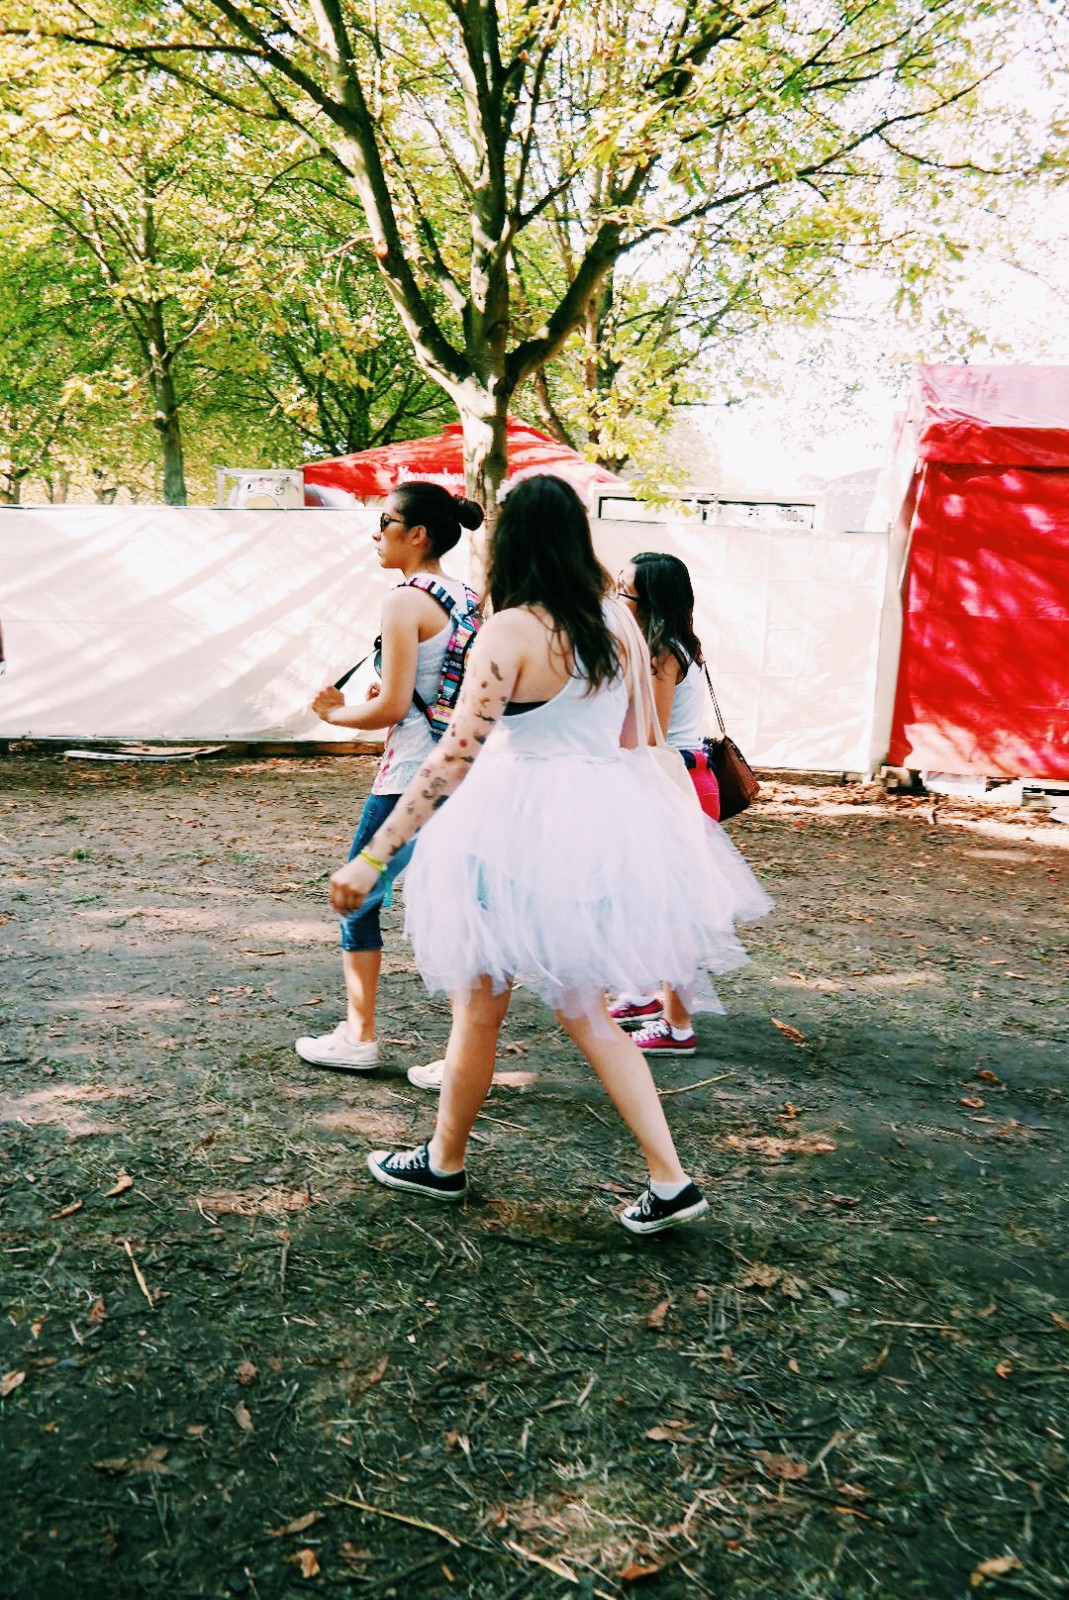 Festivalière-en-tutu-festival-Rock-en-Seine-2015-womenswear-fashion-photo-by-united-states-of-paris-blog